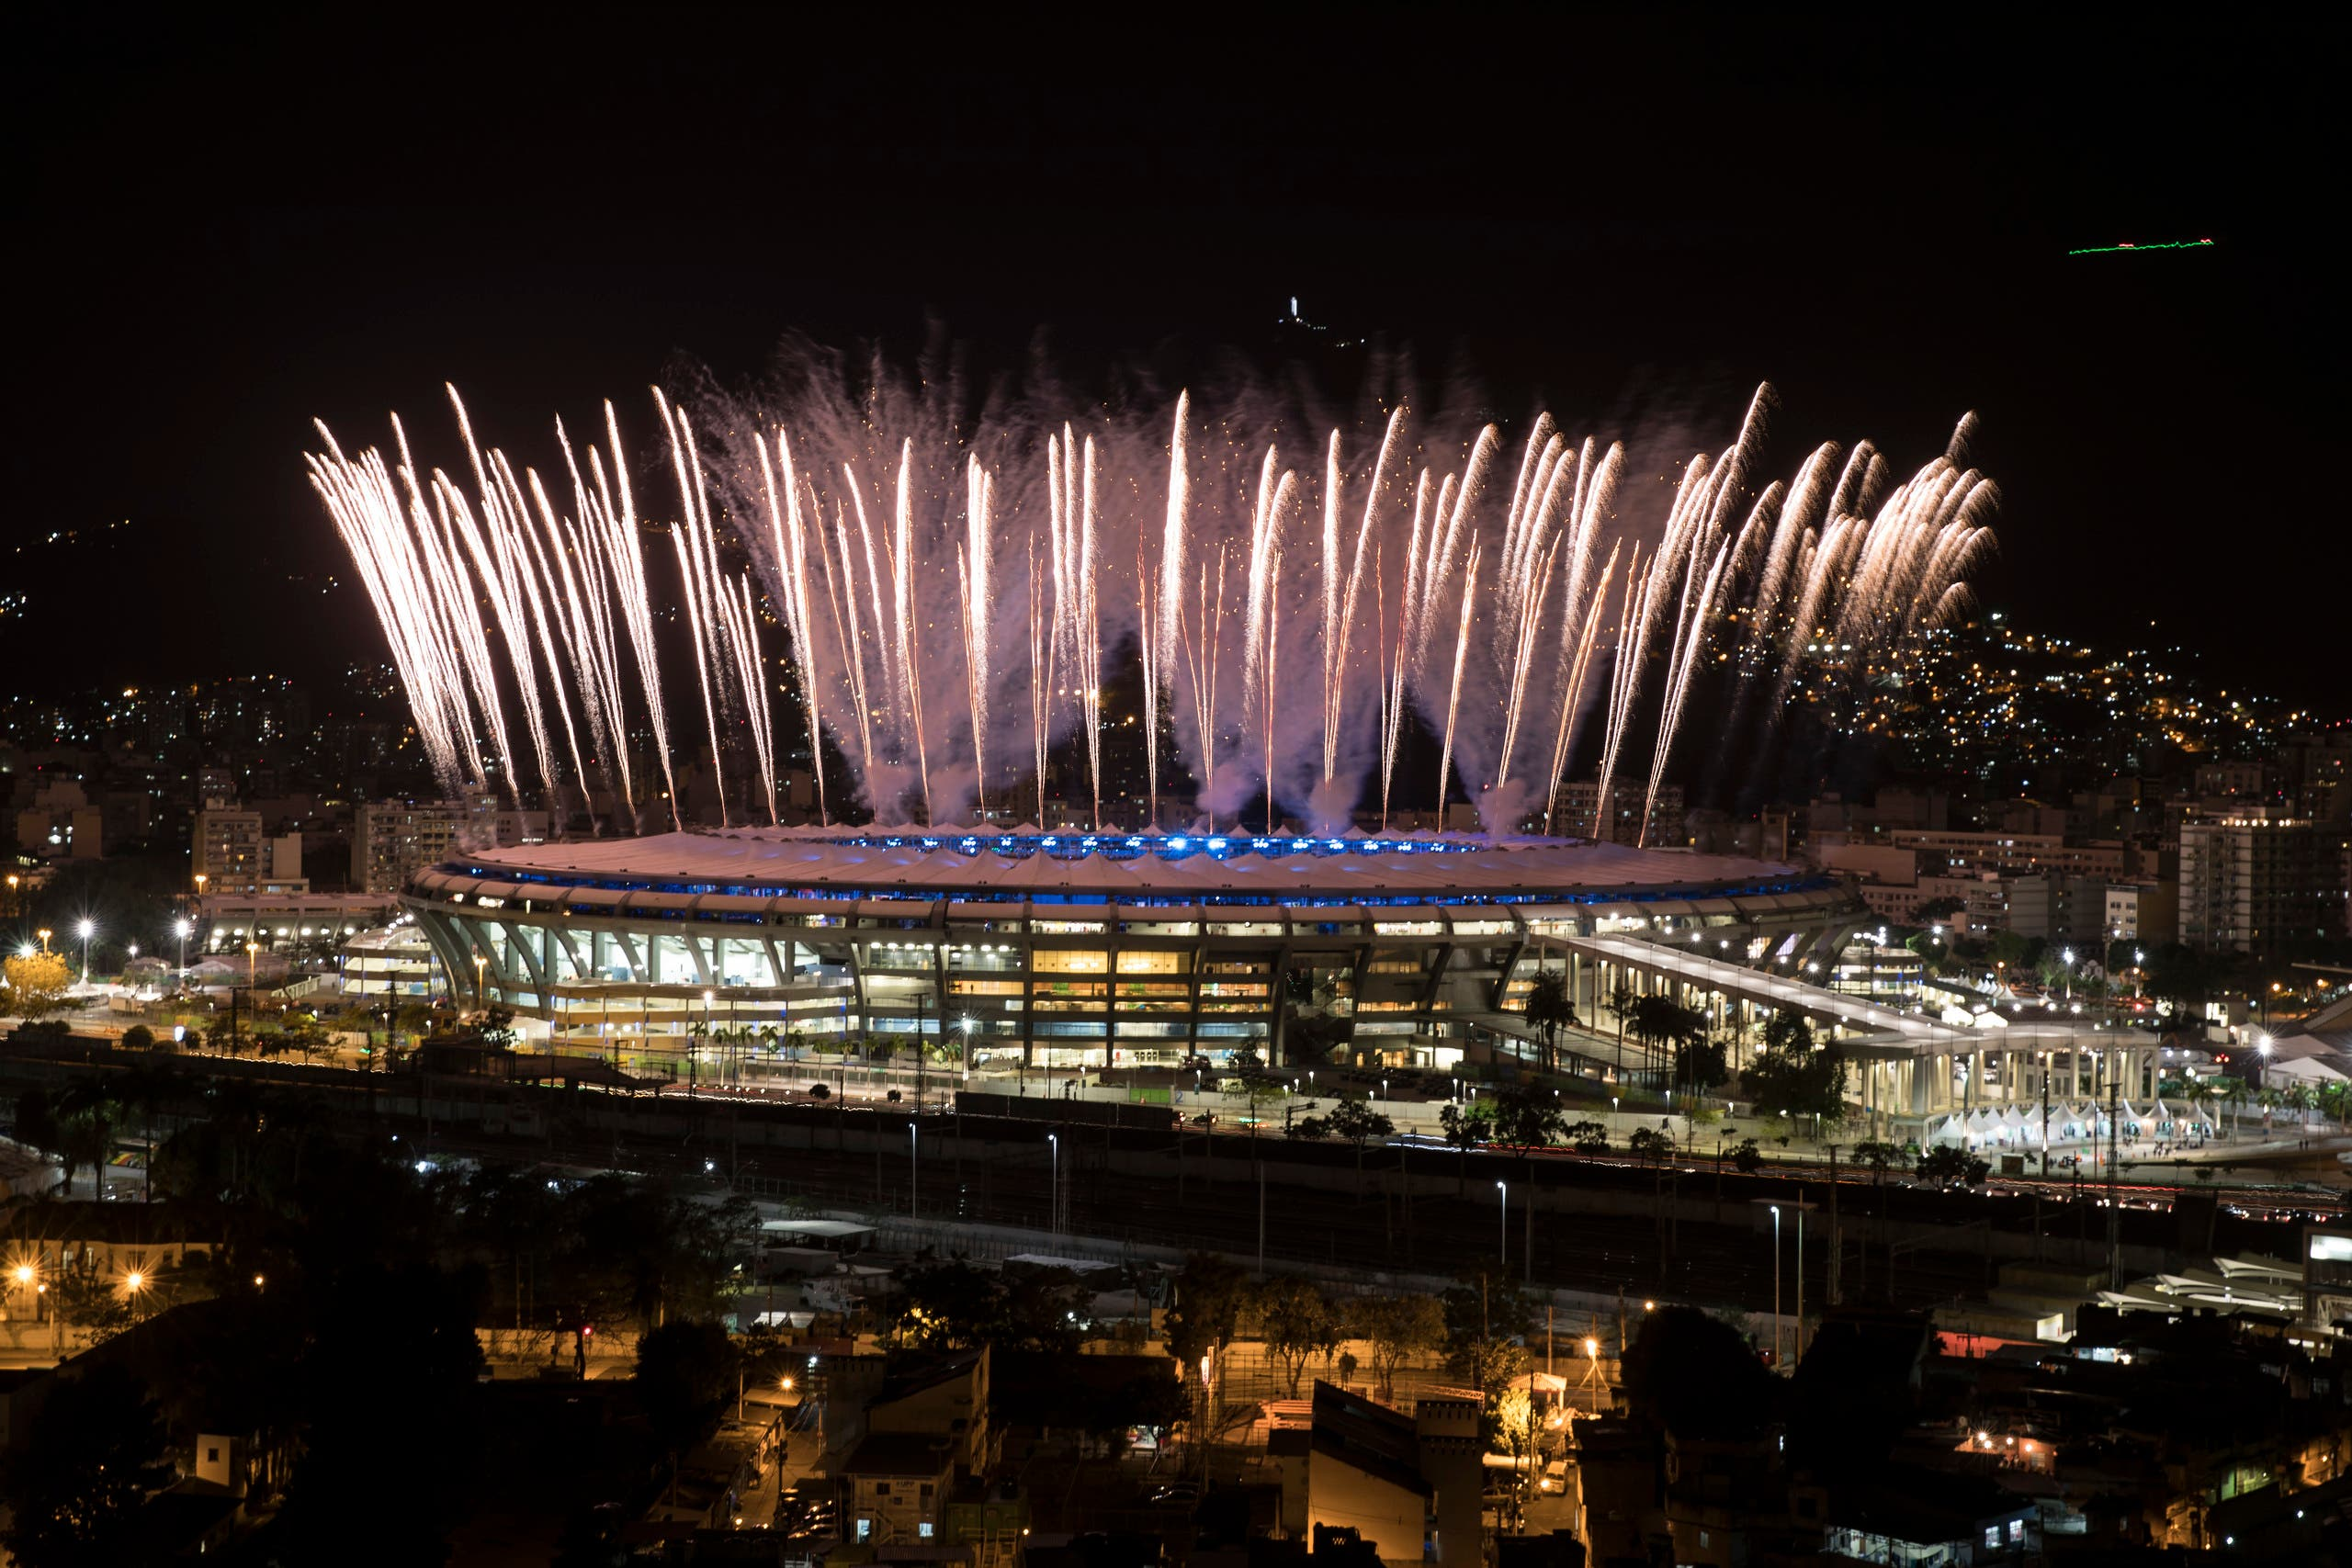 Fireworks explode above the Maracana stadium during the rehearsal of the opening ceremony of the Olympic Games in Rio de Janeiro, Brazil, Sunday, July 31, 2016. (AP